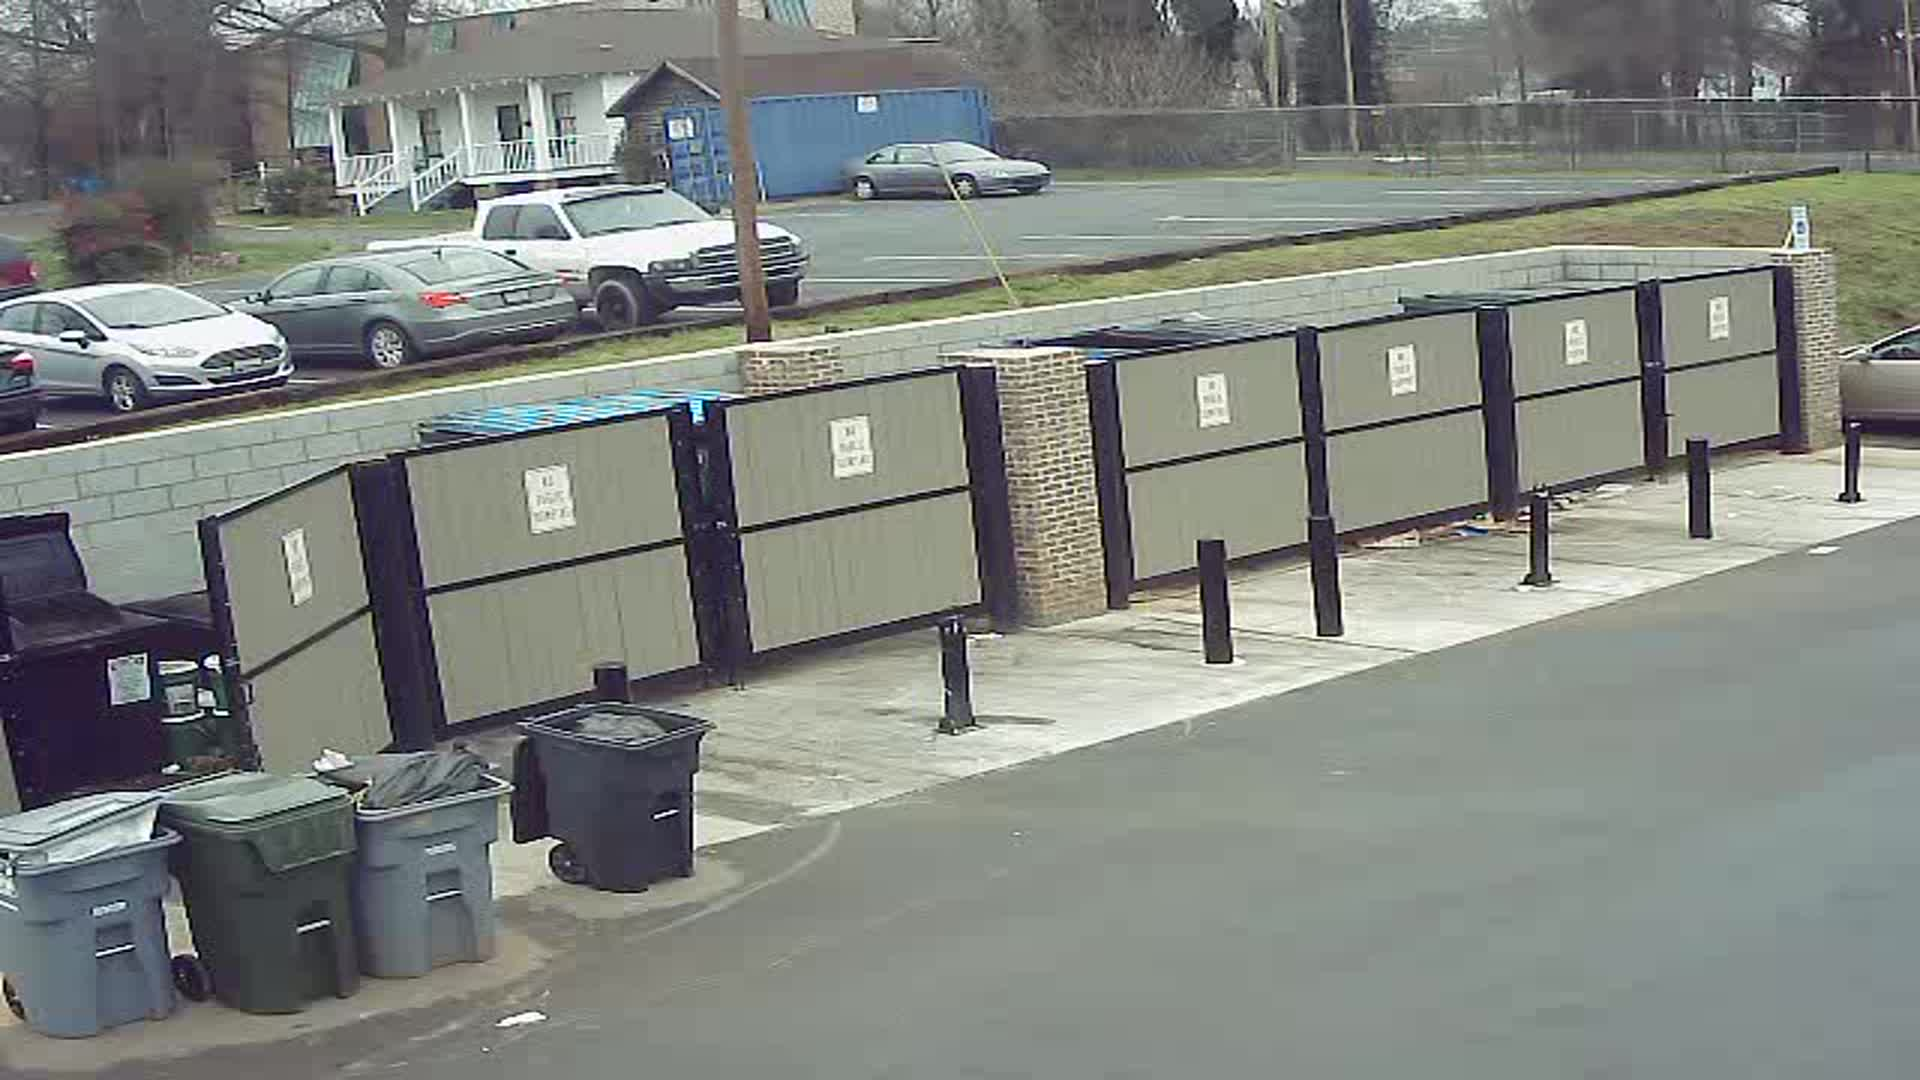 1905 - Glenway Dumpsters @ 2/20/2020 2:32:32 PM